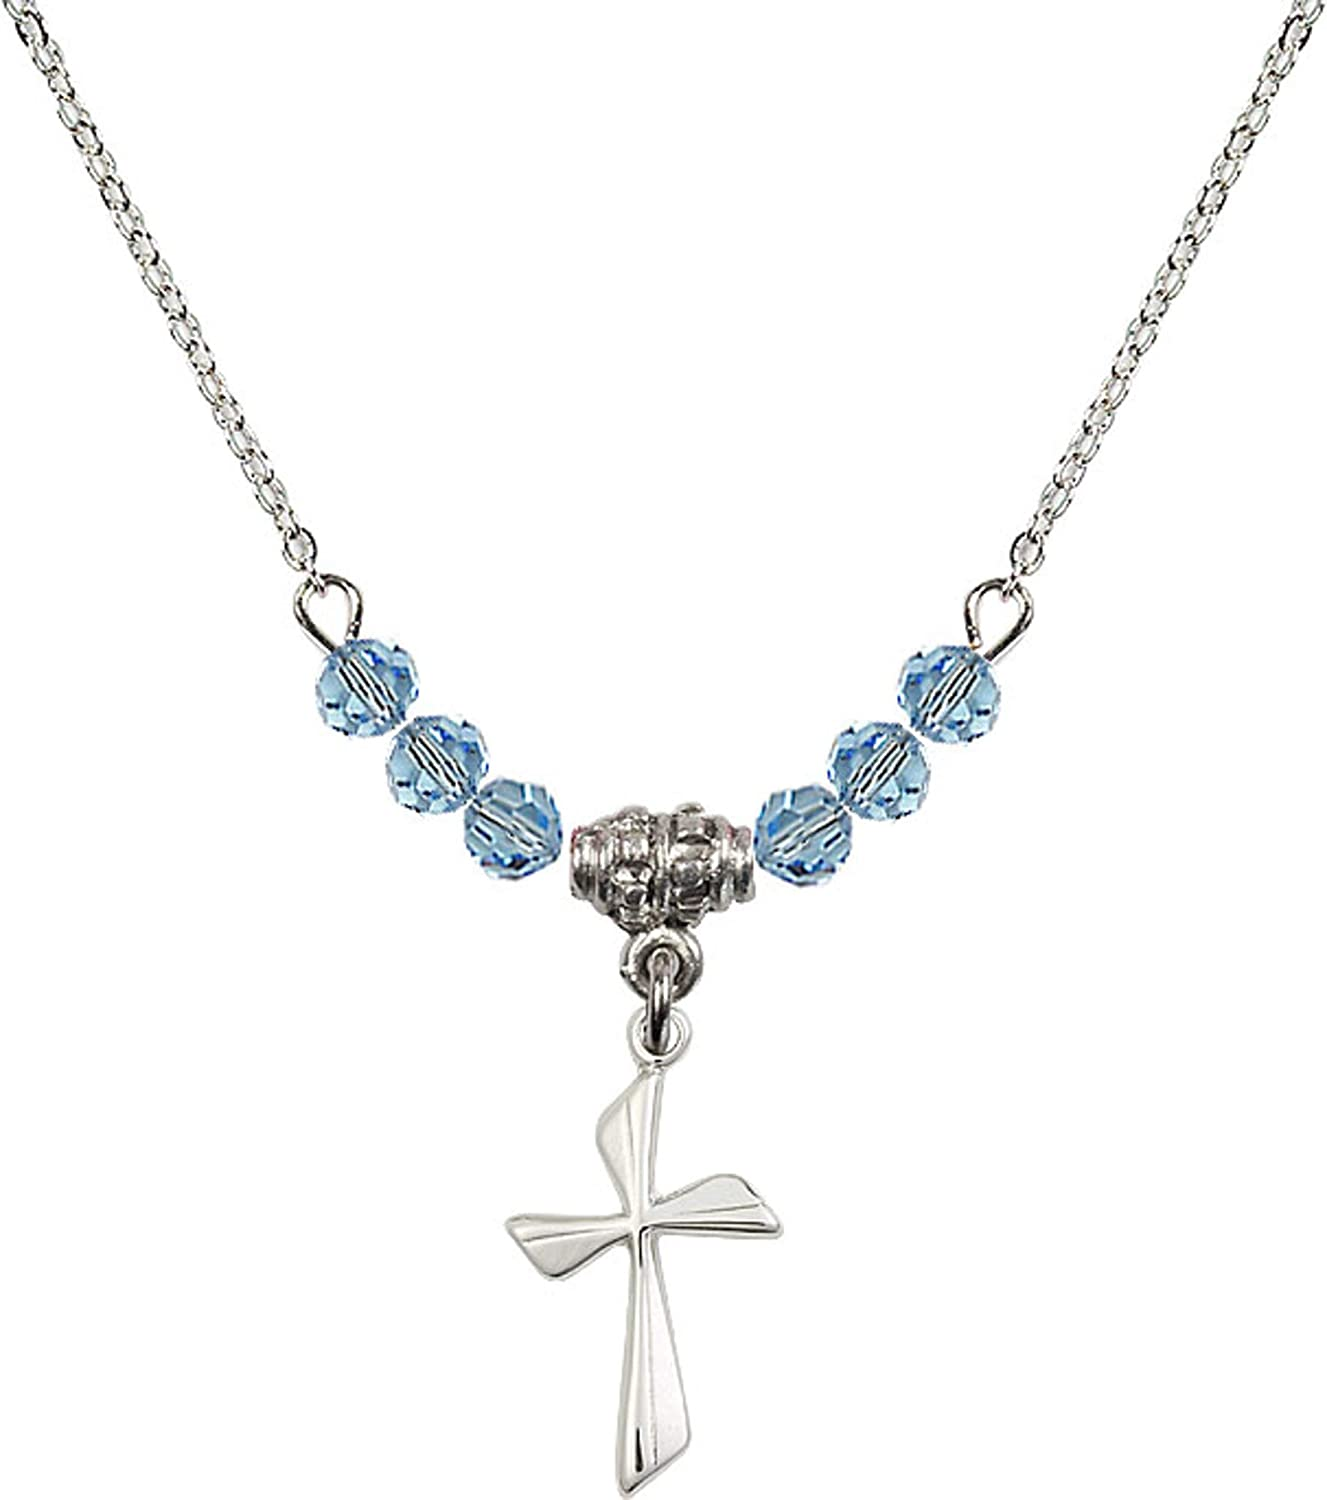 Bonyak Jewelry 18 Inch Rhodium Plated Necklace w// 4mm Blue March Birth Month Stone Beads and Cross Charm